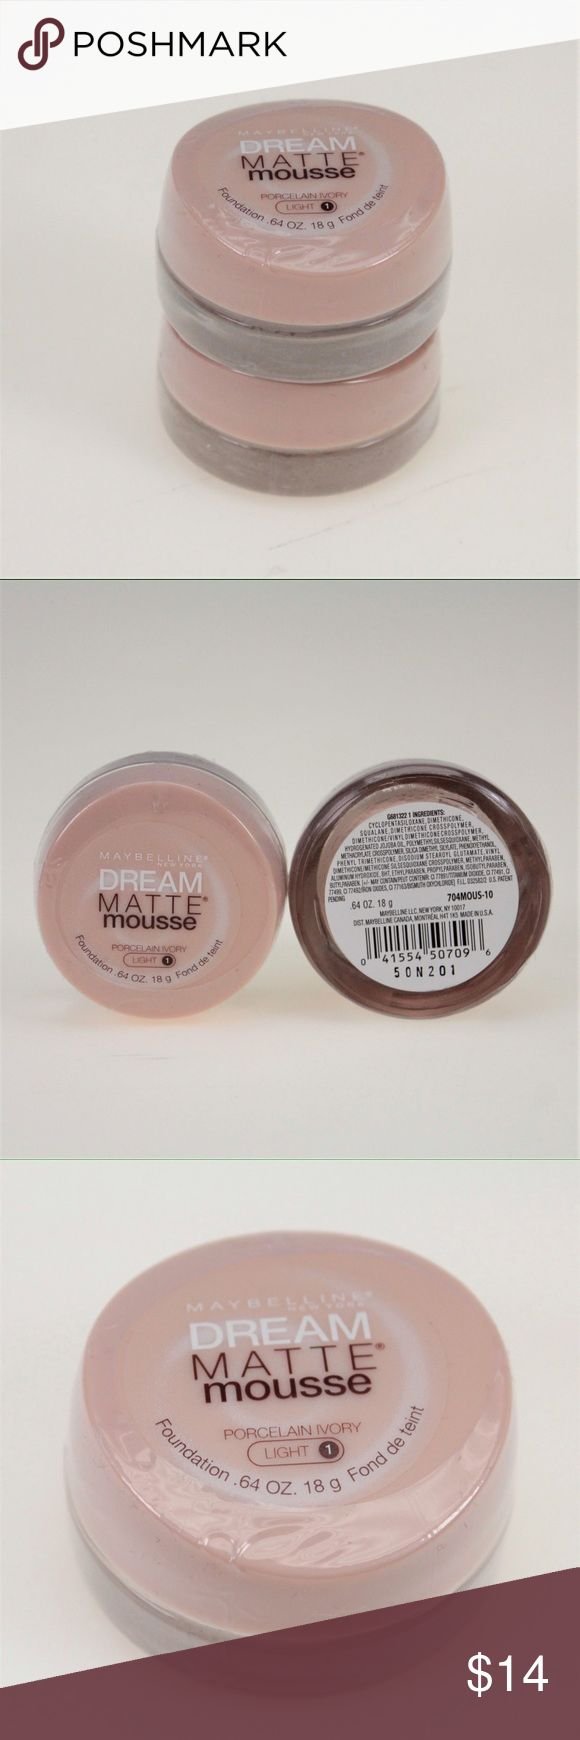 Maybelline Matte Mousse Foundation-Porcelain Ivory Revolutionary whipped formula provides air-soft, perfect matte coverage, with a weightless feel. Maybelline New York Dream Matte Mousse Foundation blends effortlessly for a soft, natural-looking, even-toned result. This set comes with two Light 1 Porcelain Ivory jars. Both are brand new and still sealed. Maybelline Makeup Foundation